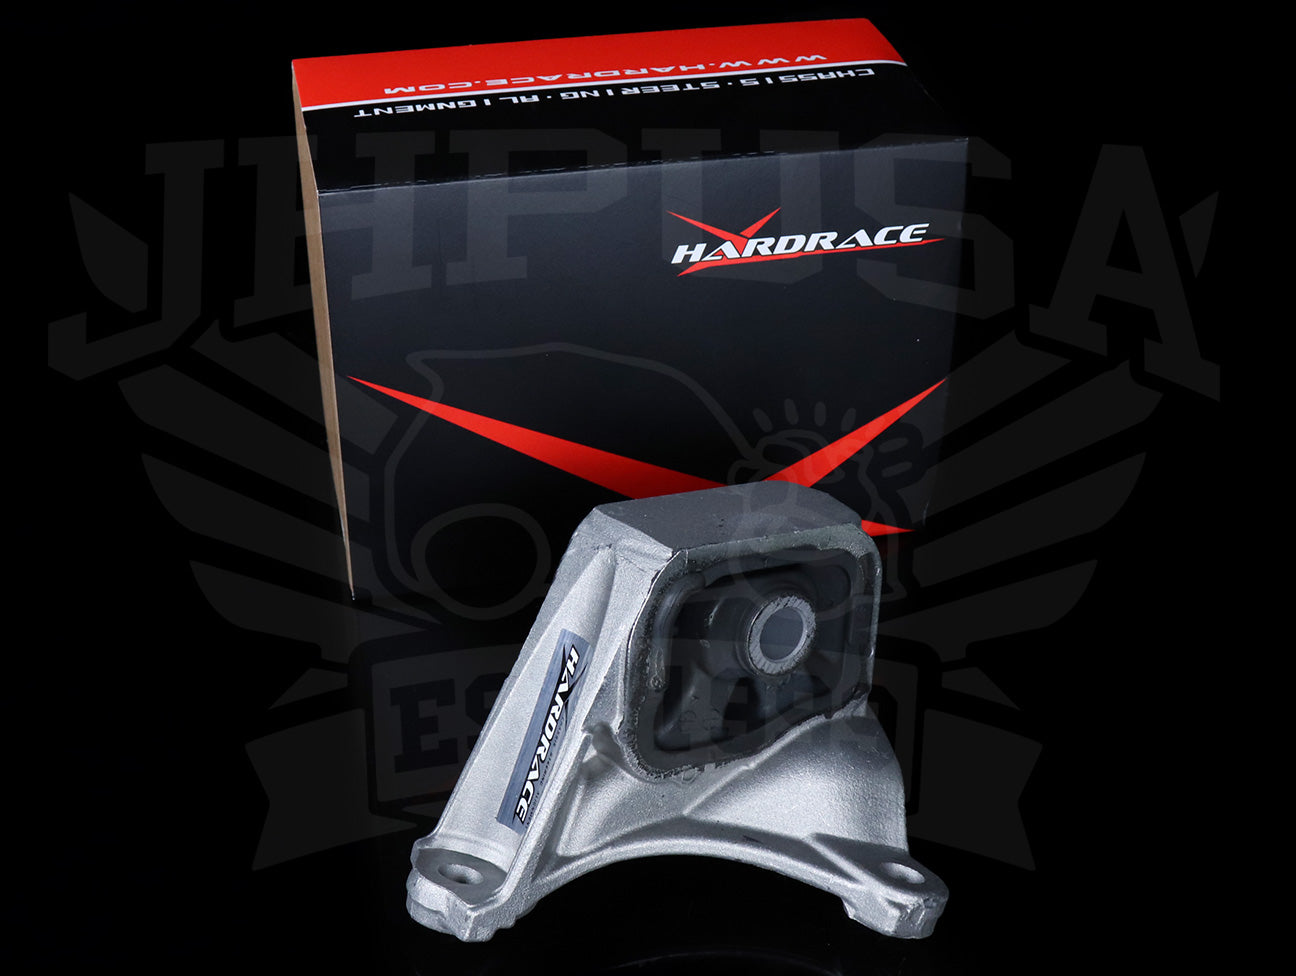 Hardrace Front Engine Mount (Street) - 02-05 Civic Si / 02-06 RSX